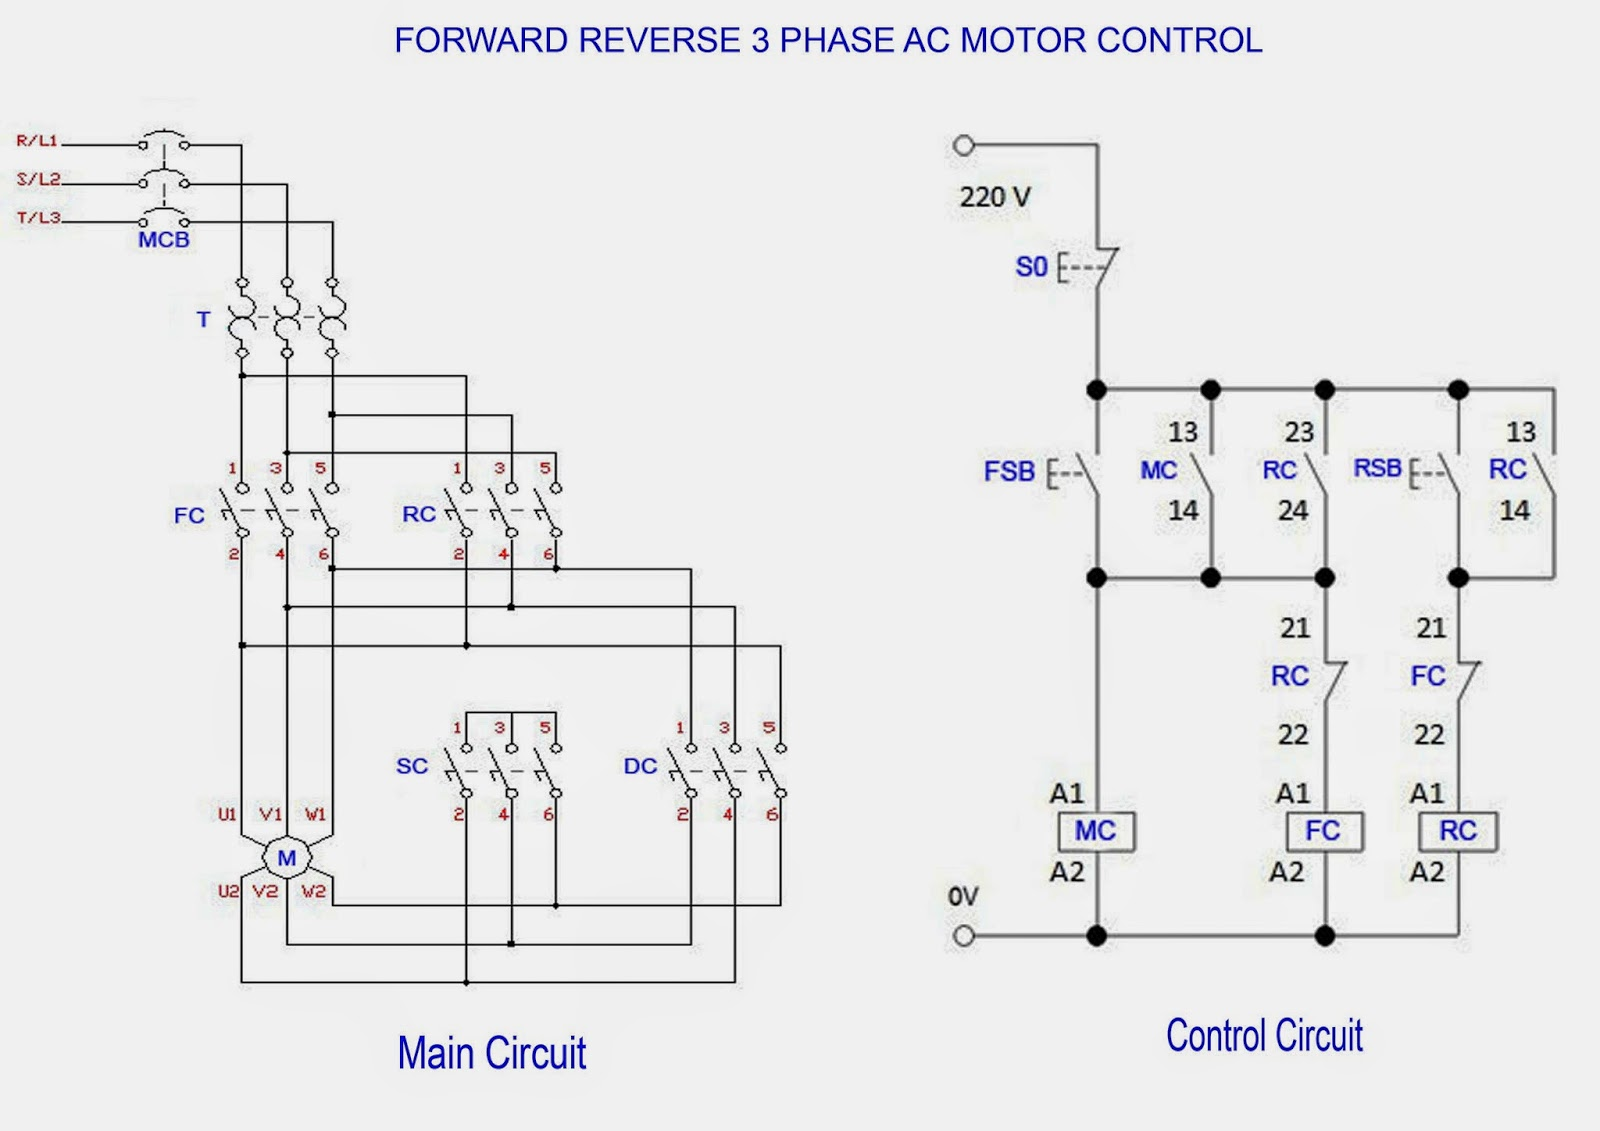 small resolution of forward reverse 3 phase ac motor control star delta wiring forward reverse motor control circuit diagram pdf forward reverse motor control wiring